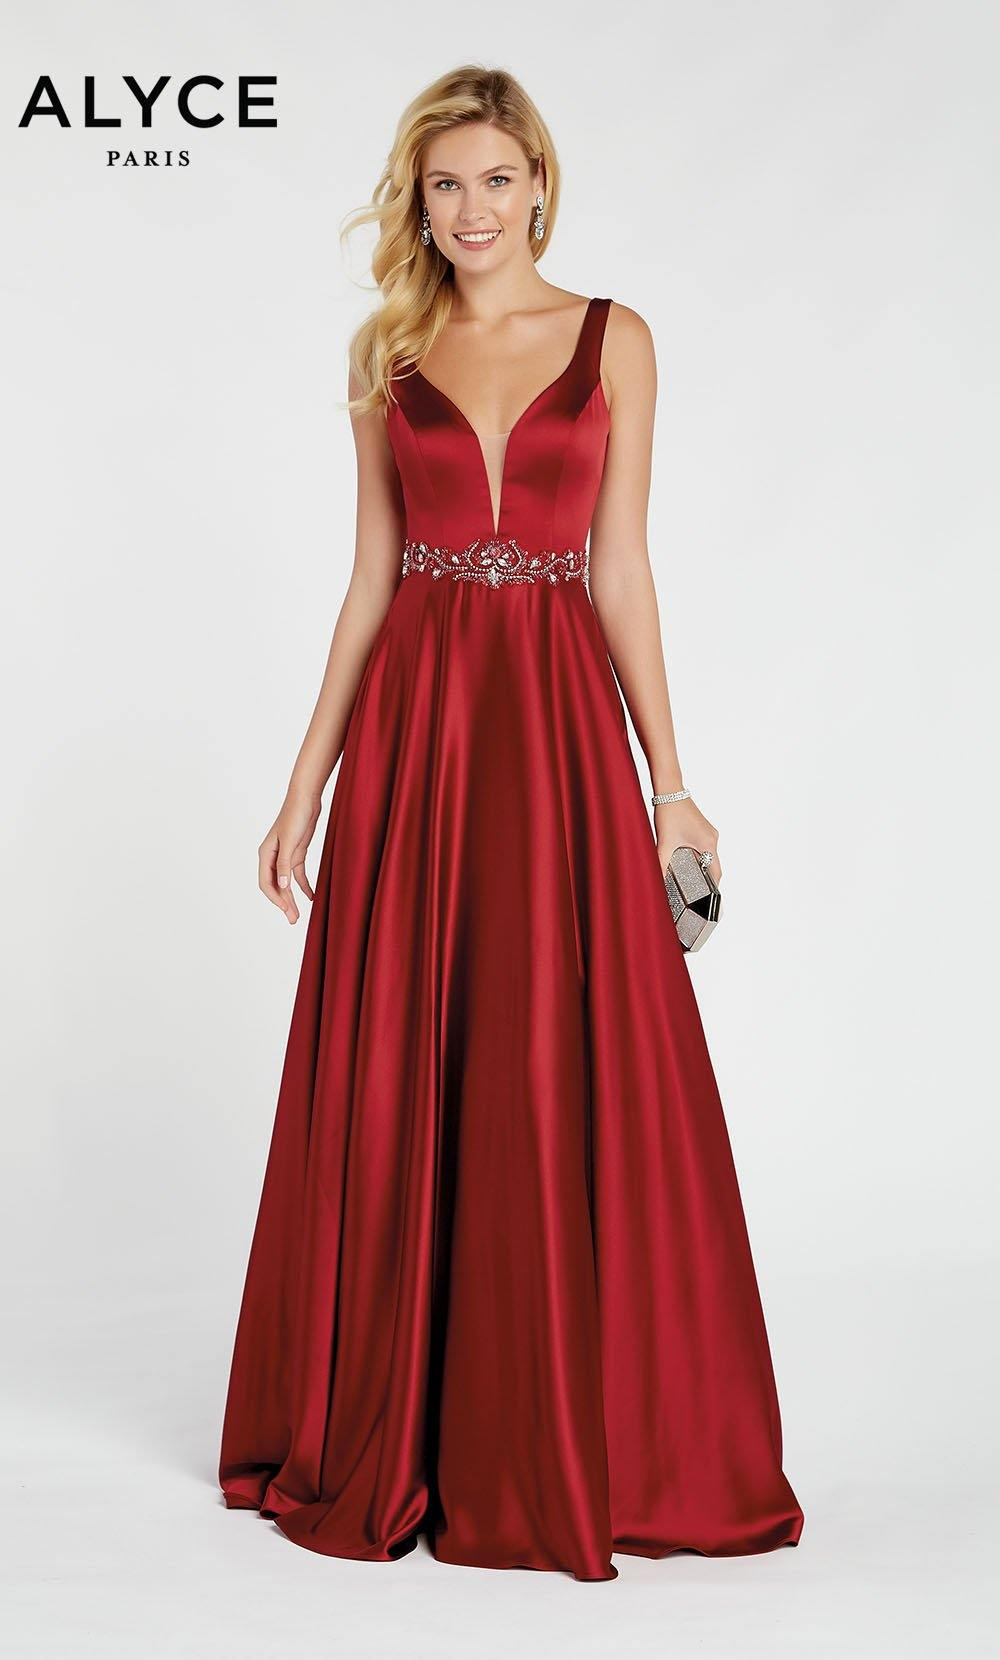 Dark Red luminous satin A line formal dress with a plunging neckline and beaded natural waistline